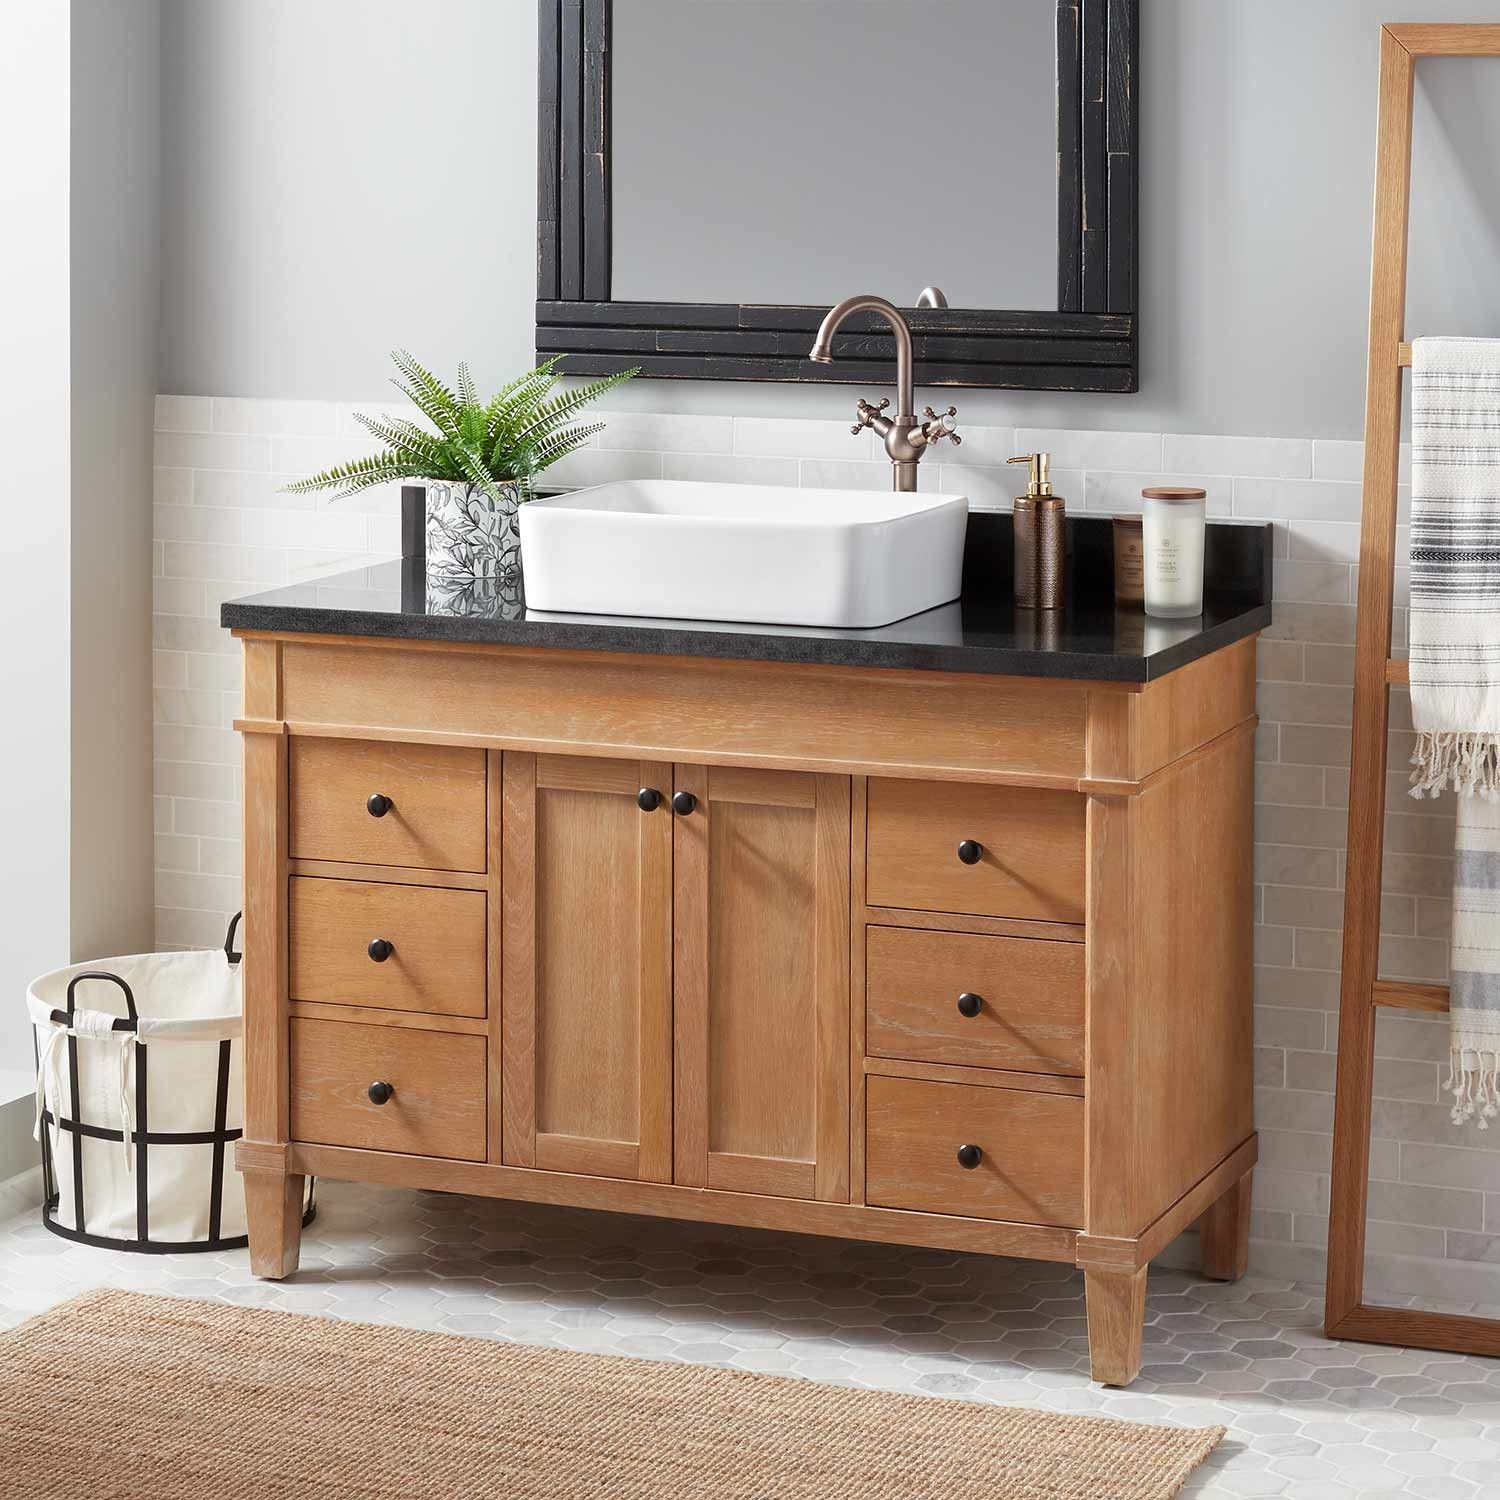 48 Marilla Vessel Sink Vanity Vessel Sink Vanities Bathroom